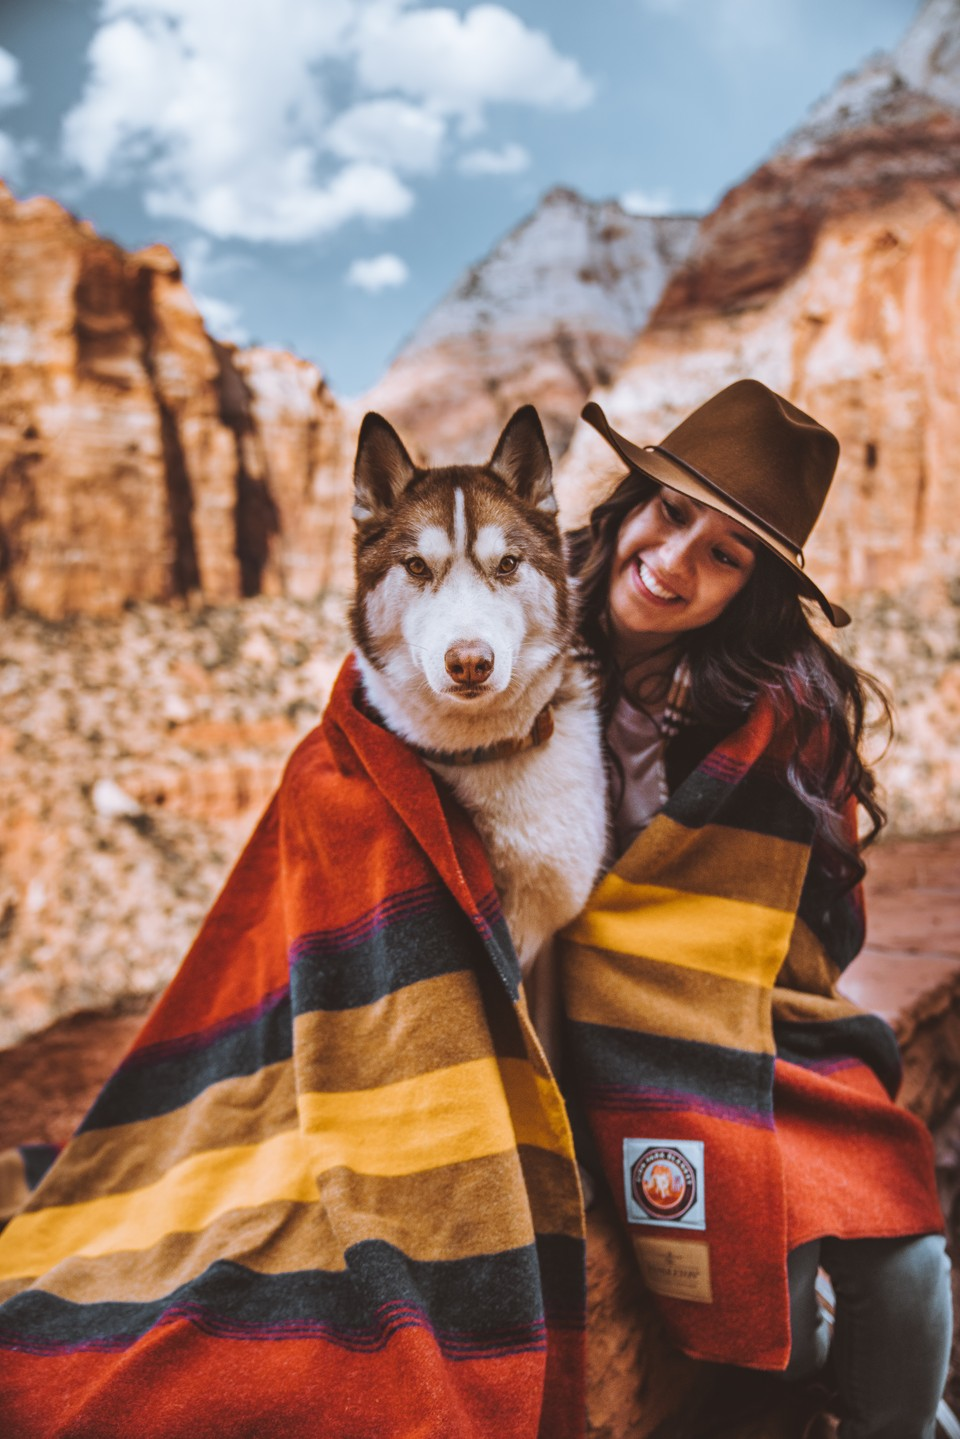 A husky dog stares at the camera in Zion National Park.